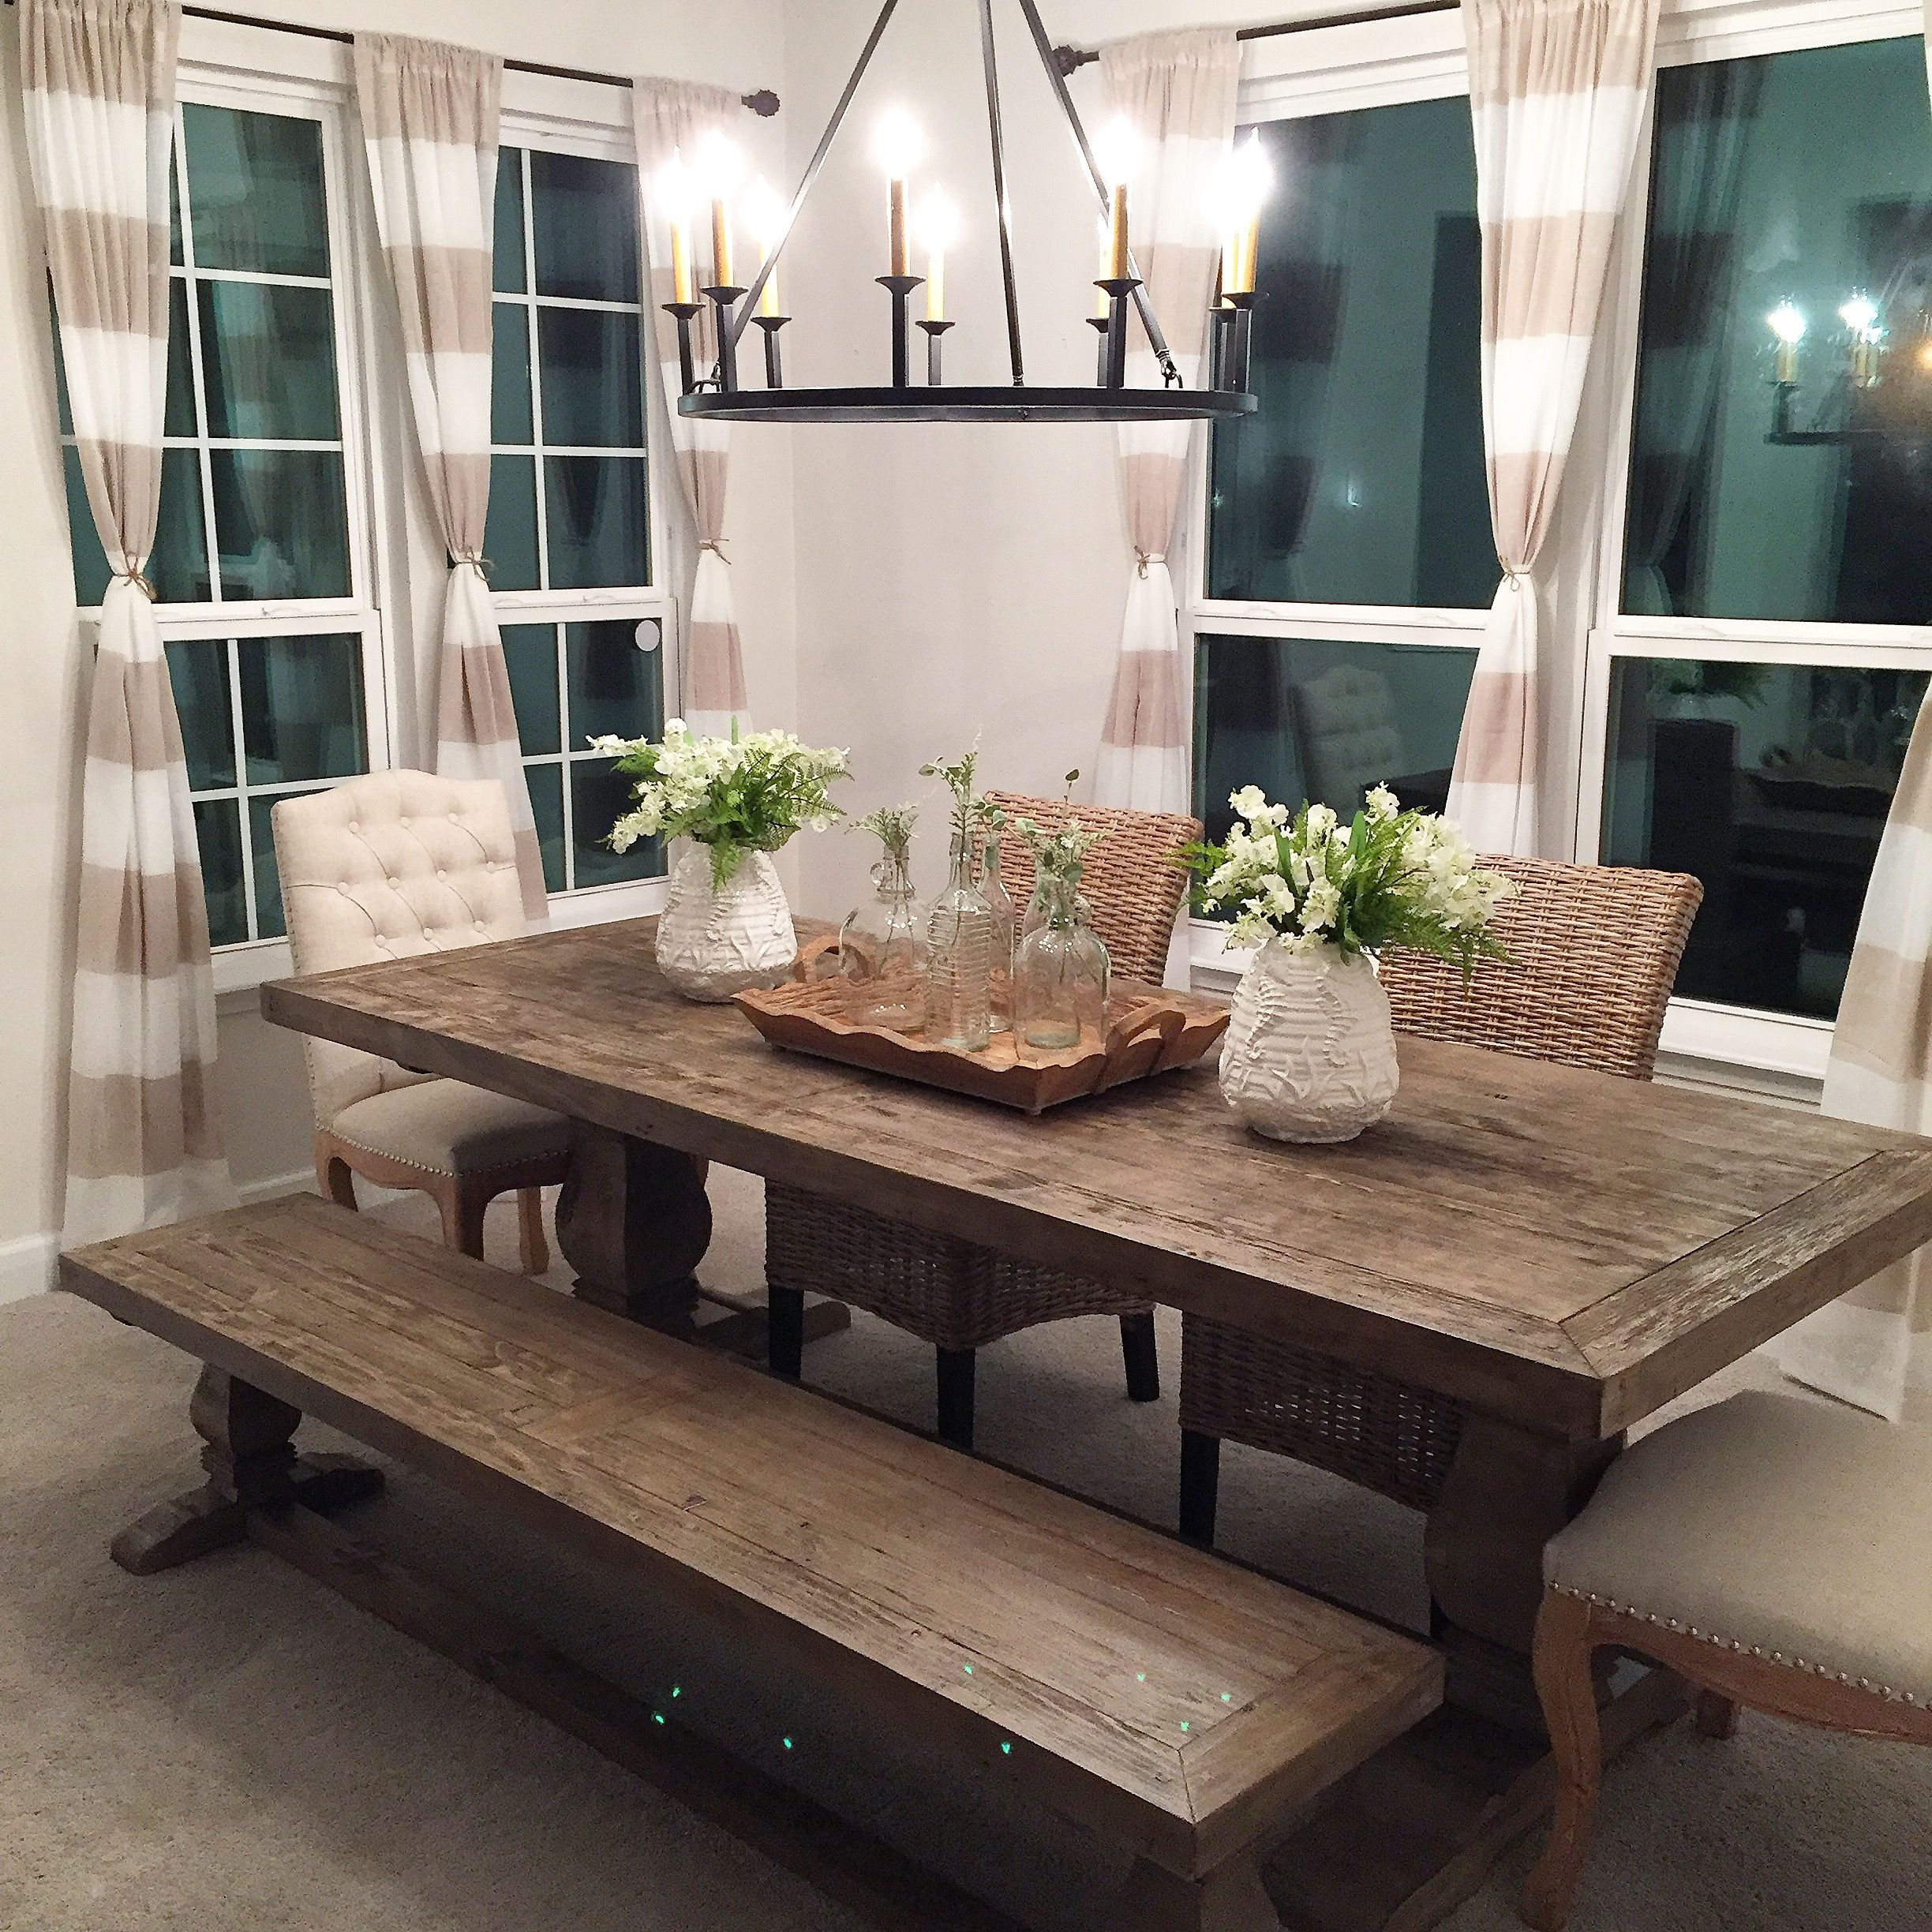 Coastal Farmhouse Dining Room is almost complete. Table